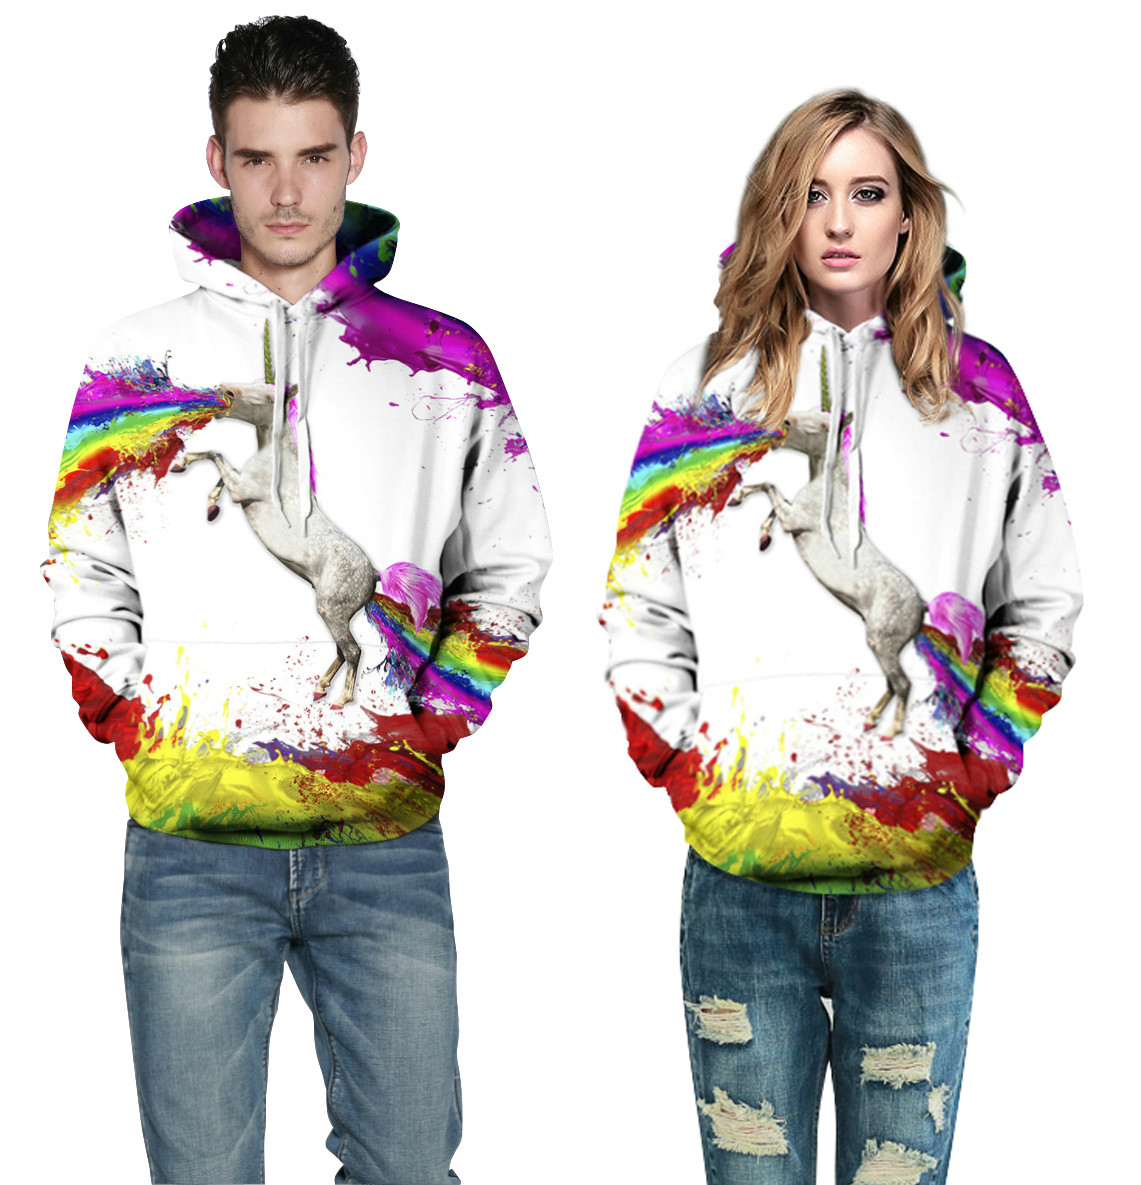 2018 Autumn Winter Fashion Men/women Hoodies 3D Paint Colorful Print Animal Casual Tops Hip Hop Punk Couple Hoodies Sweatshirt